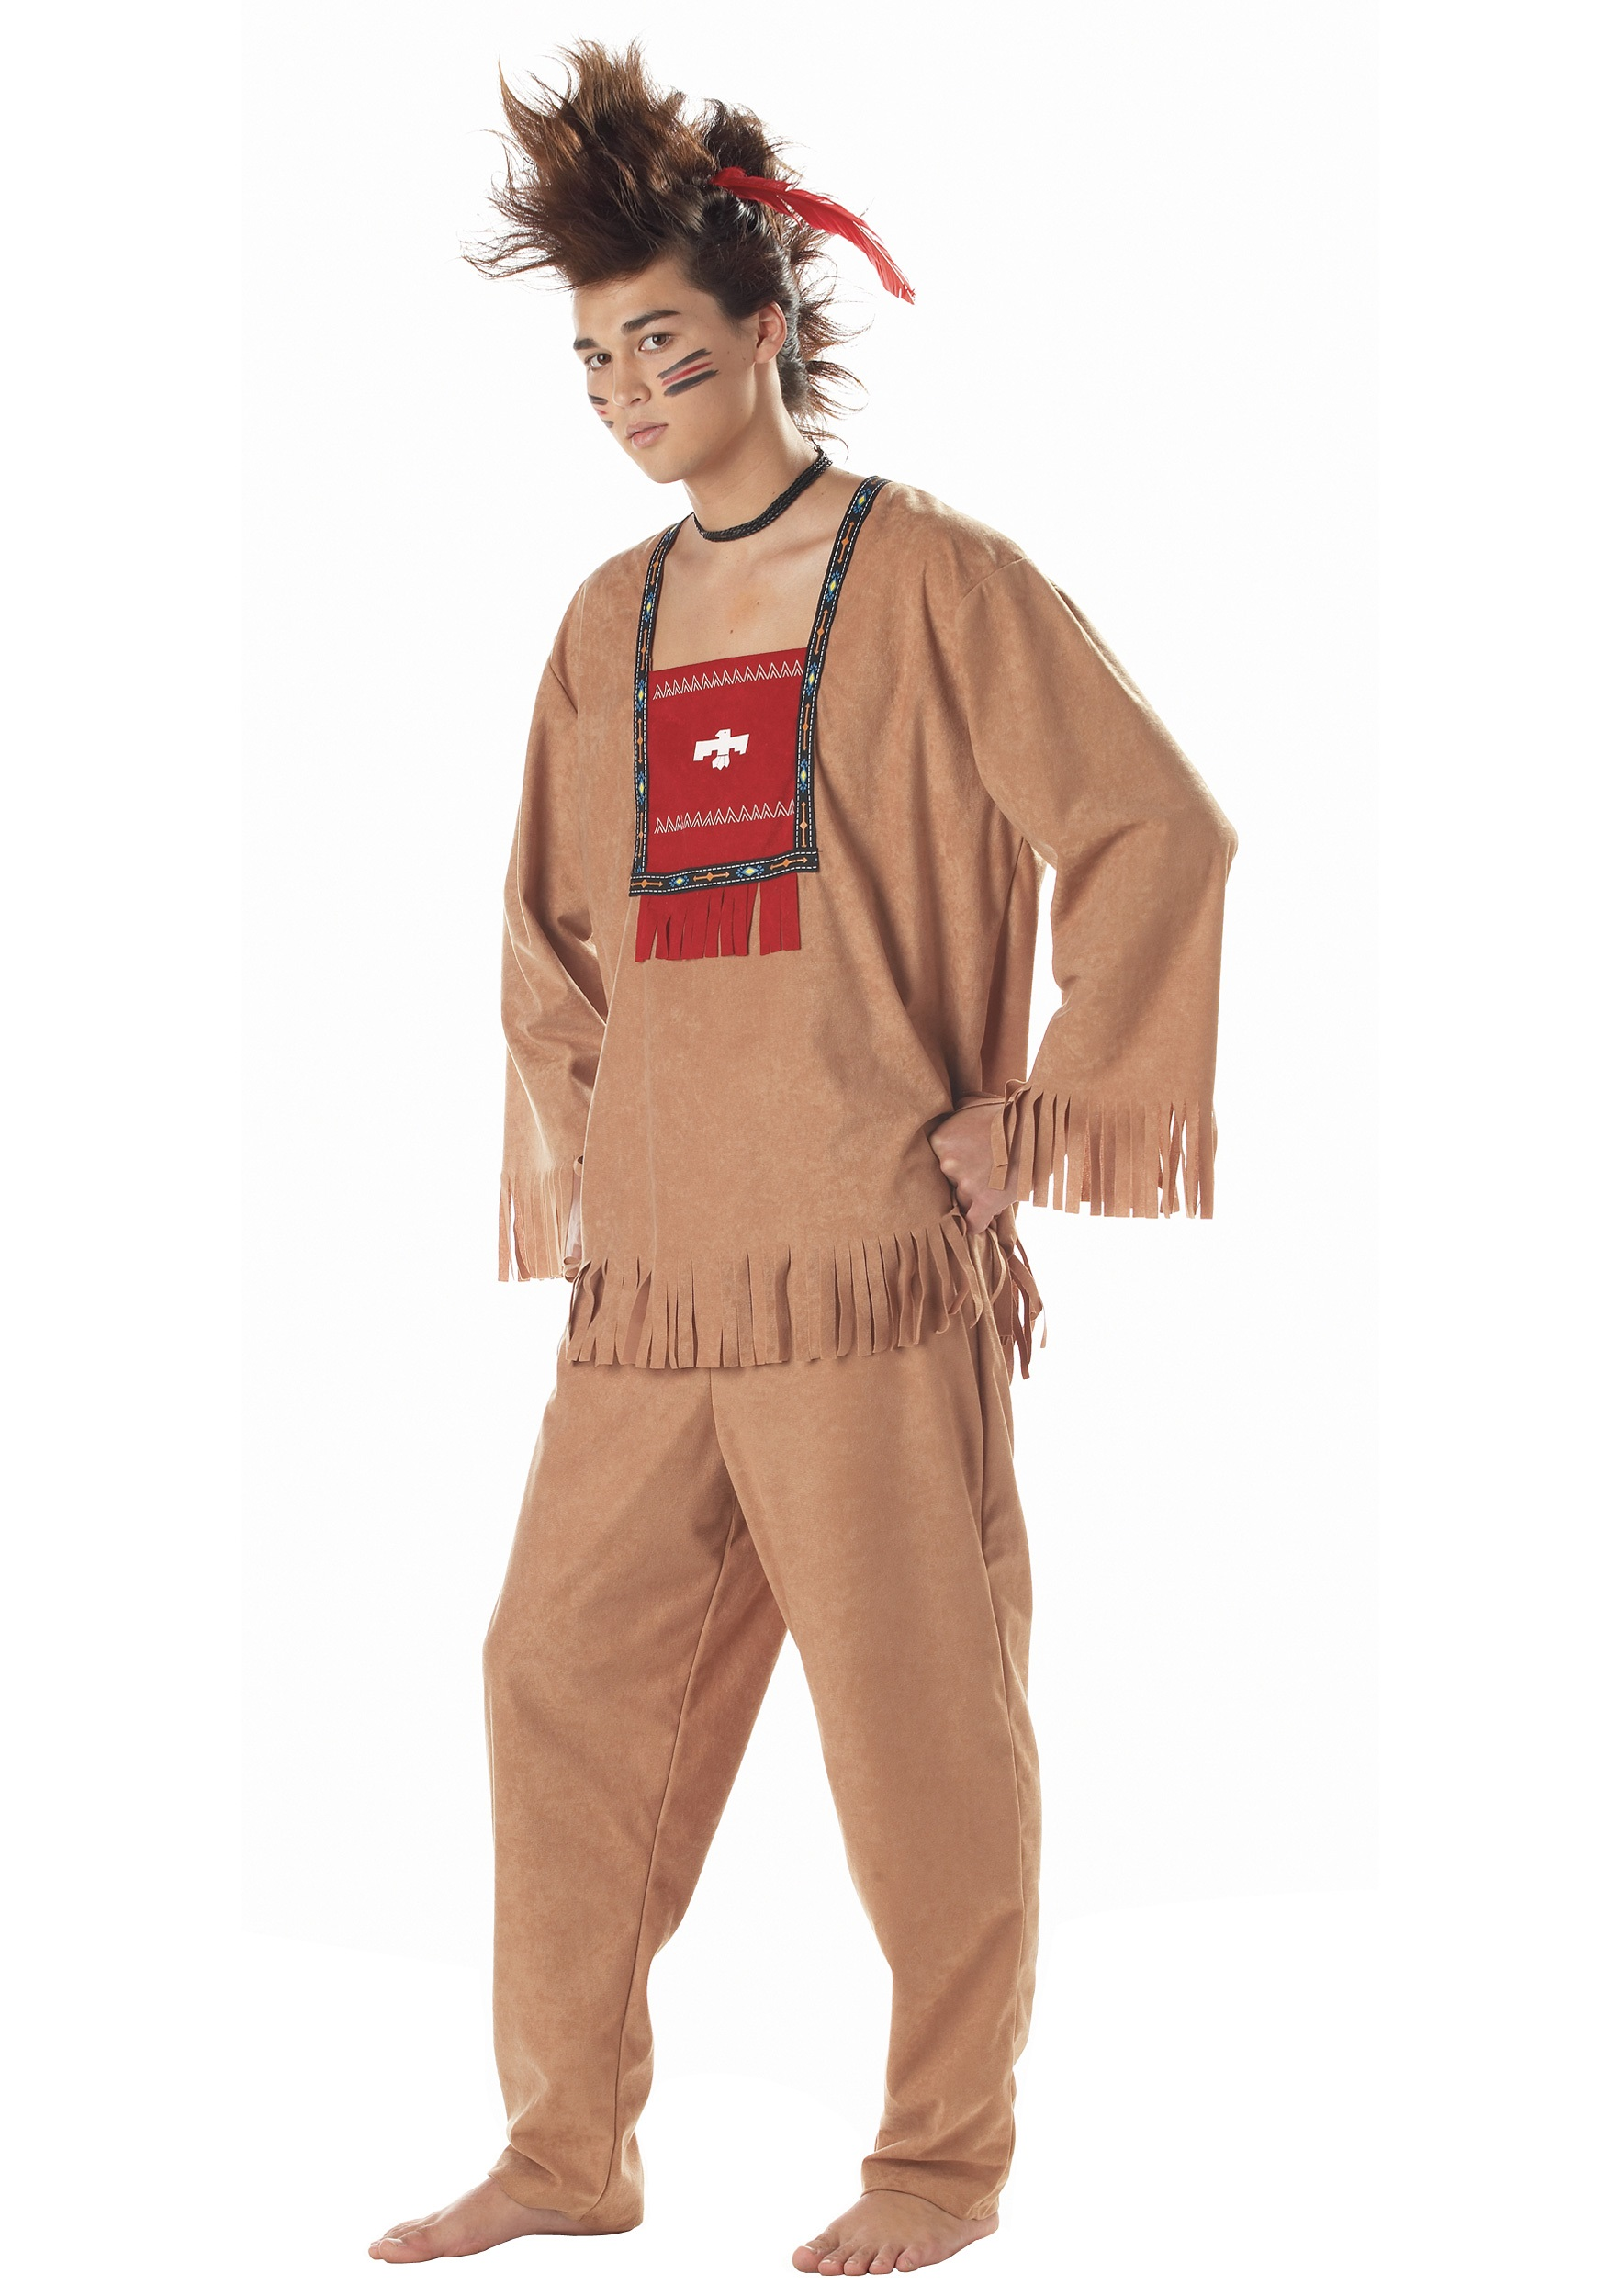 Adult American Indian Costume  sc 1 st  Halloween Costumes & Adult American Indian Costume - Halloween Costumes